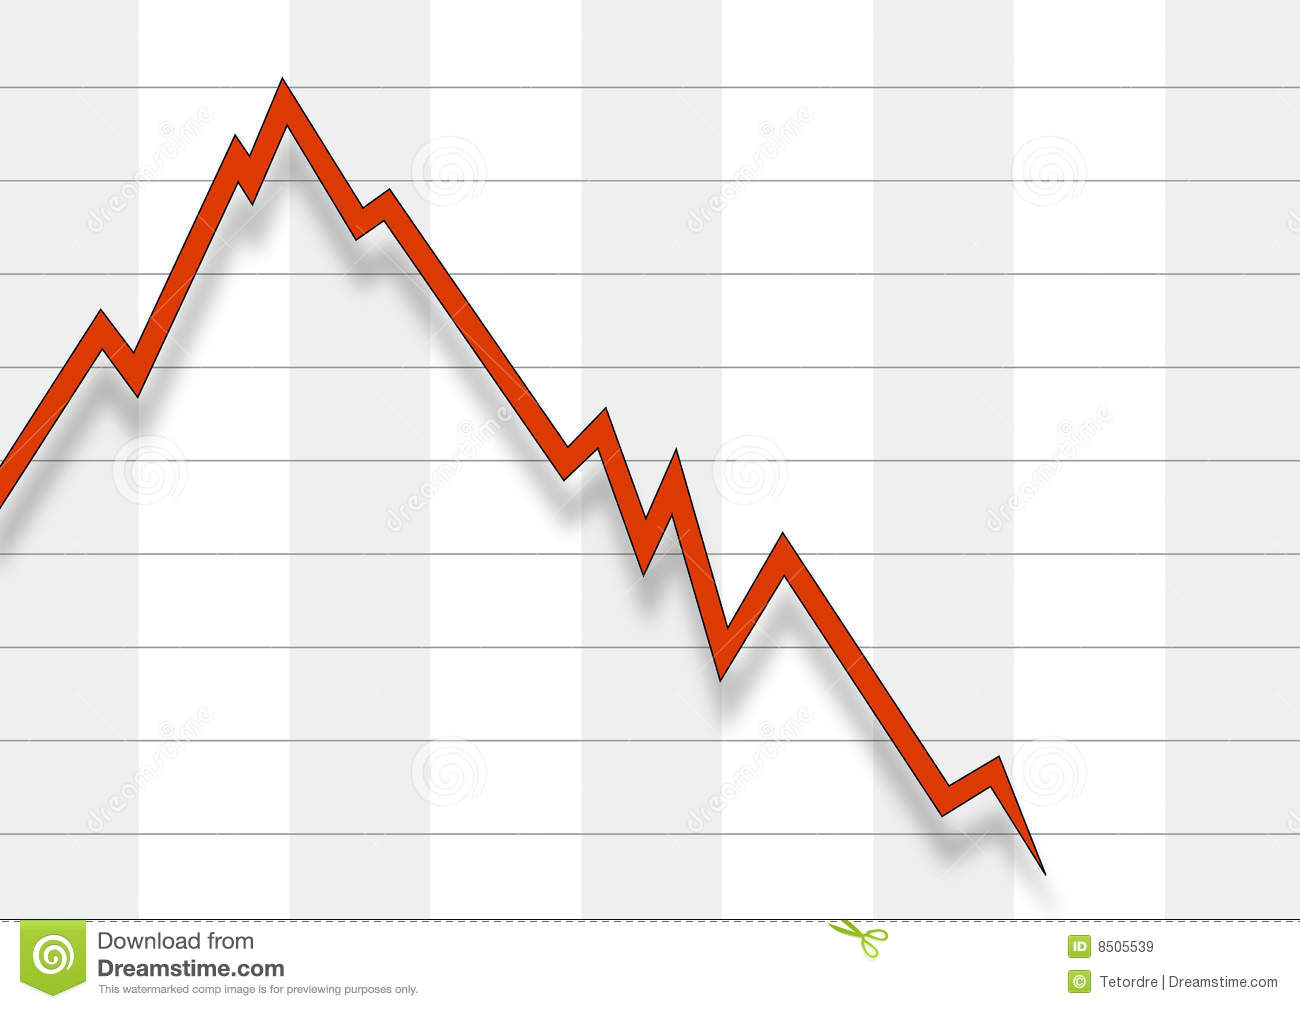 Falling Stock Chart Royalty Free Stock Images - Image: 8505539